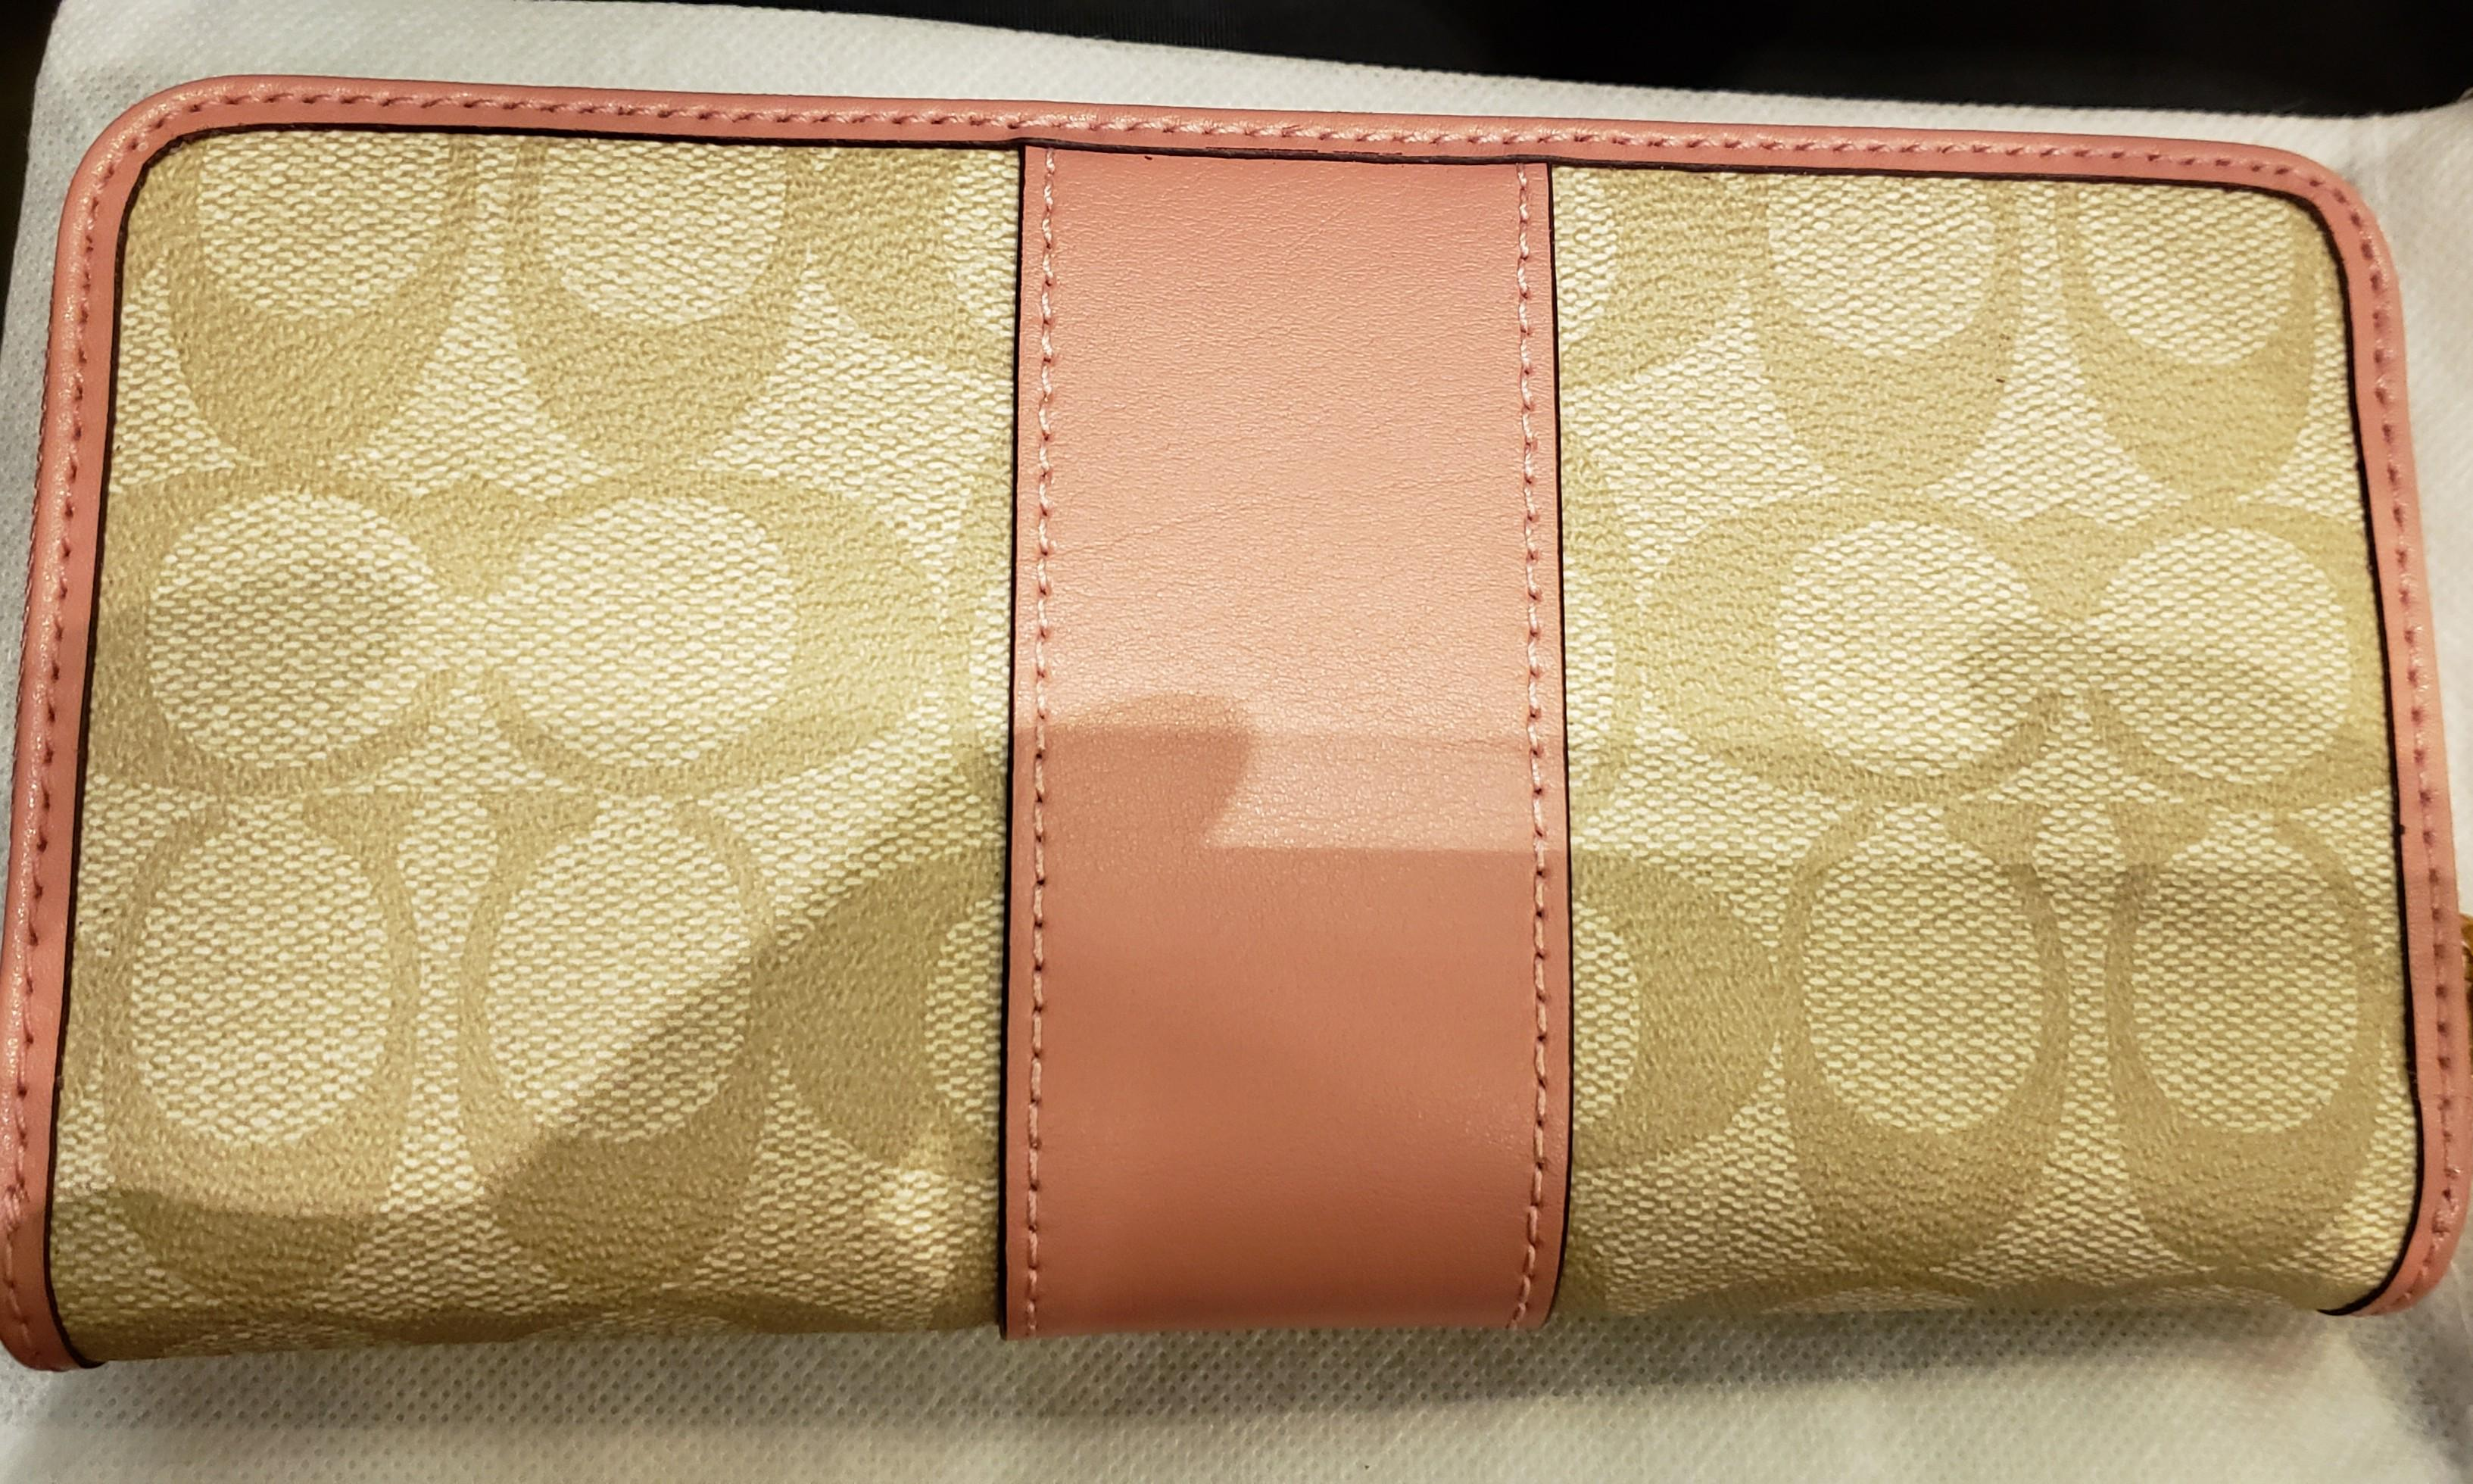 brand new coach wallet in pink color